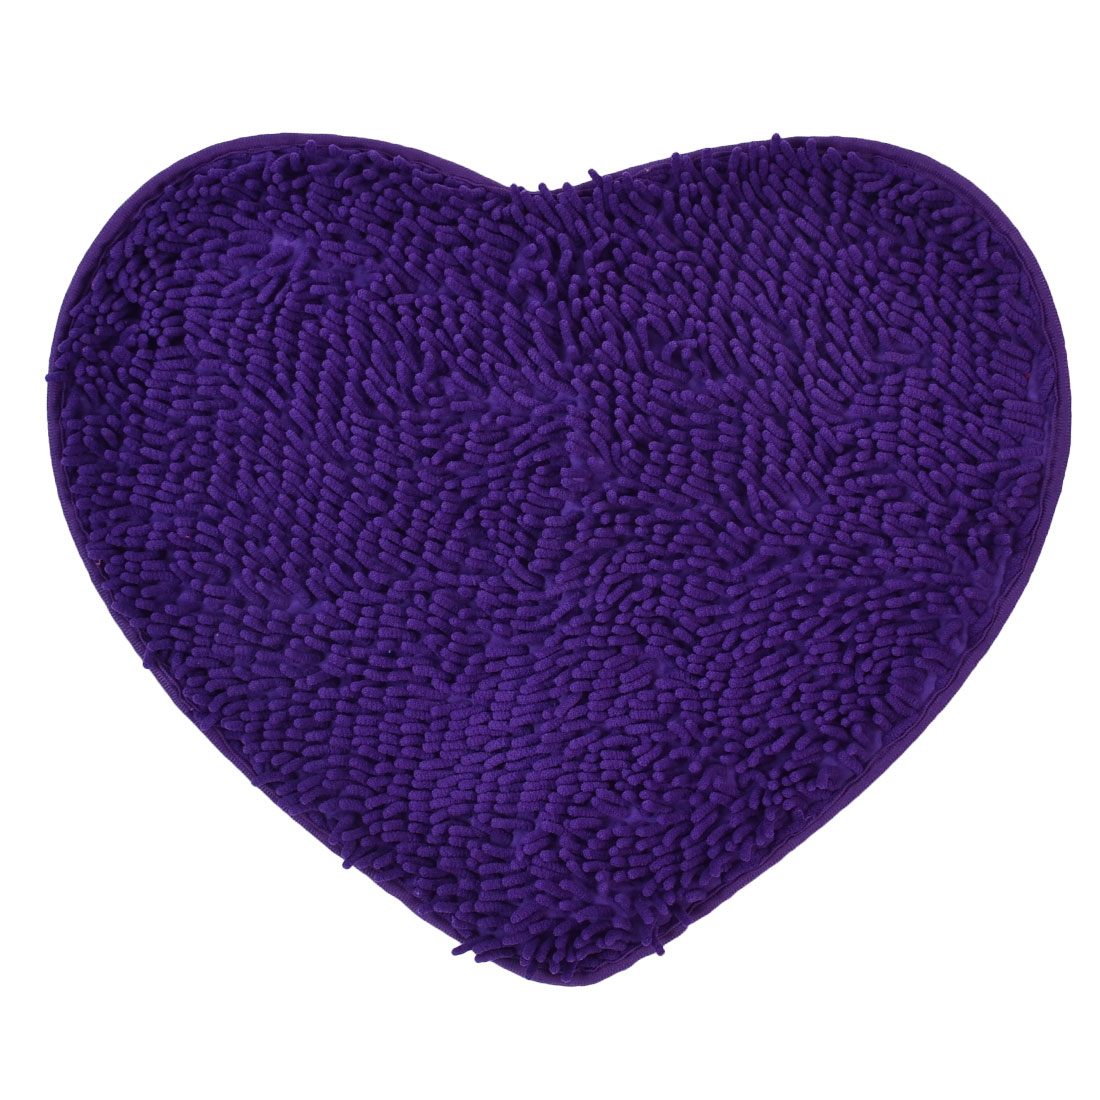 56cm x 45cm Purple Polyester Heart Shaped Absorbent Non-slip Pad Bath Shower Rug